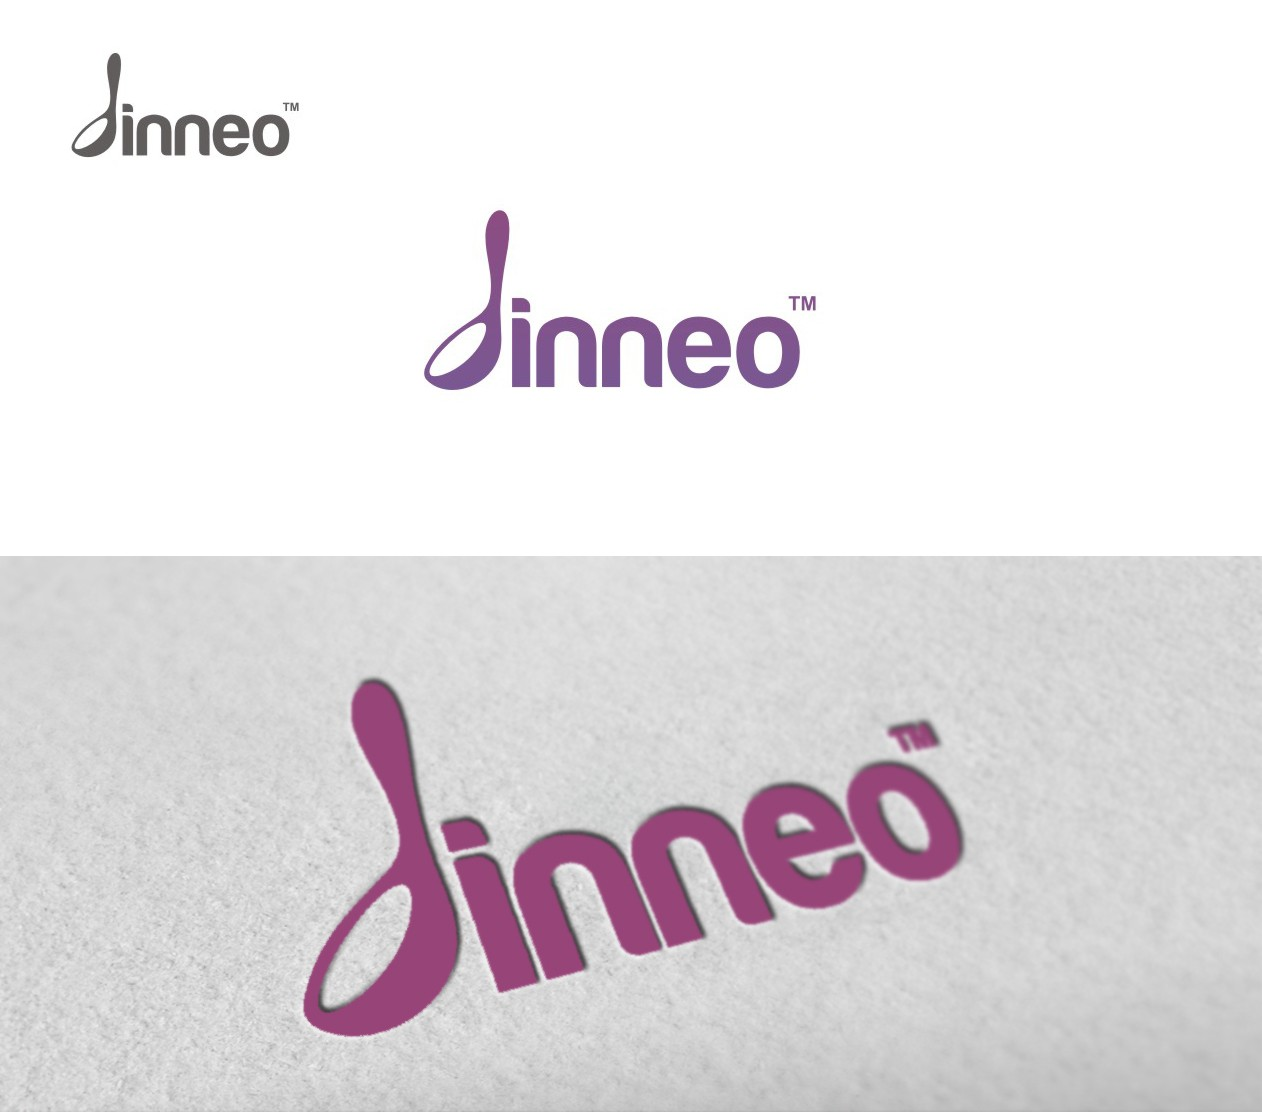 New logo wanted for Dinneo